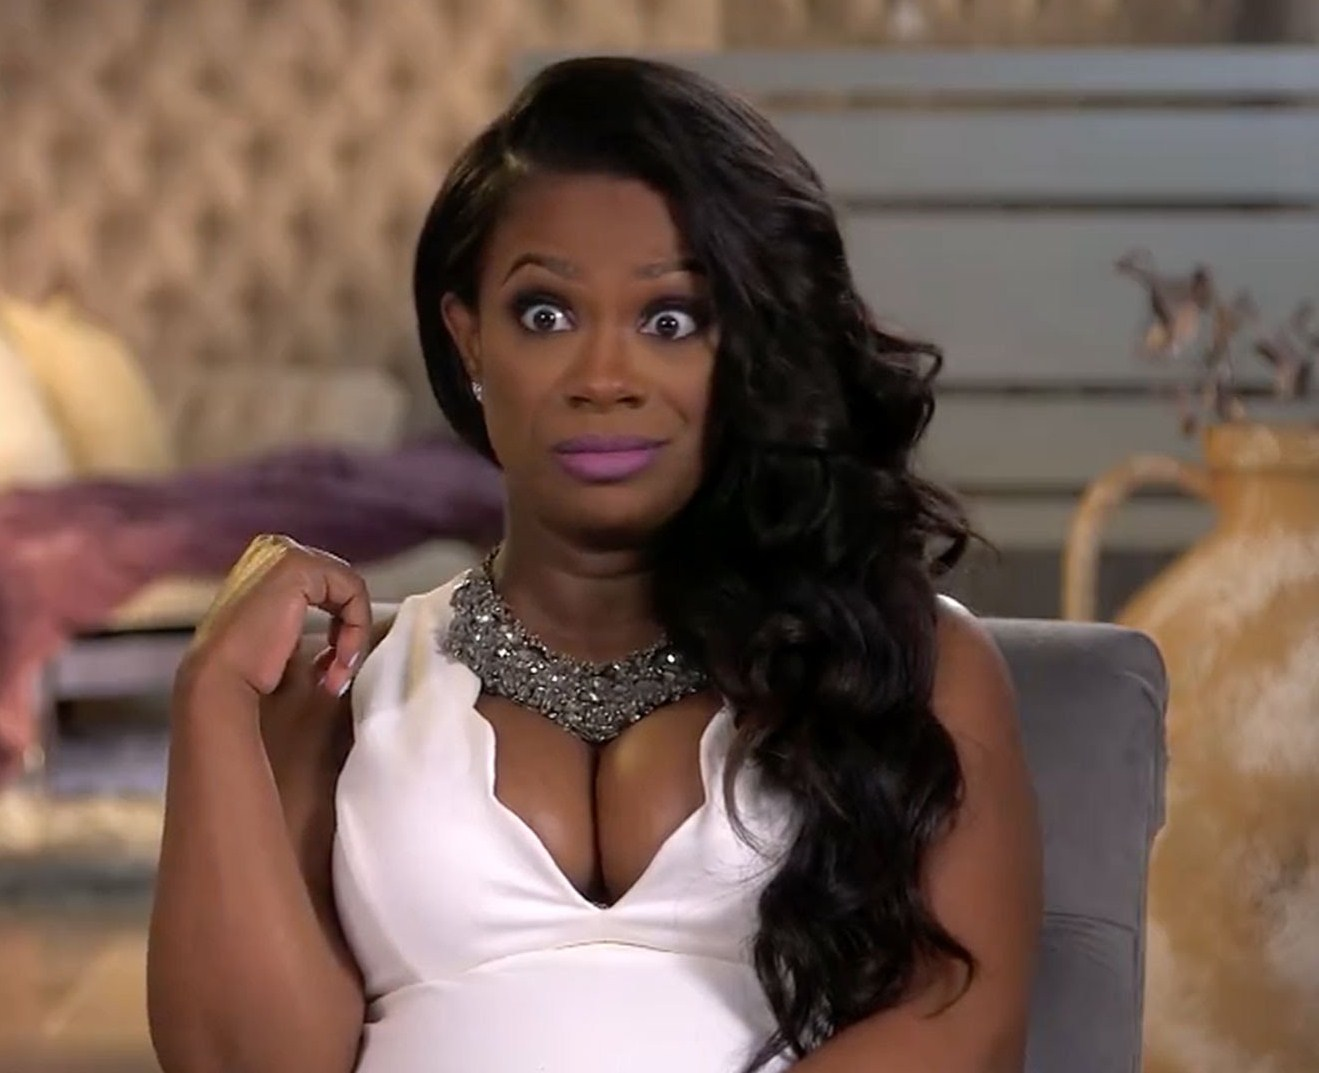 """kandi-burruss-is-reportedly-planning-to-sue-walmart-they-used-her-photo-to-promote-wigs-fans-tell-the-rhoa-star-shes-on-wish-and-amazon-as-well"""